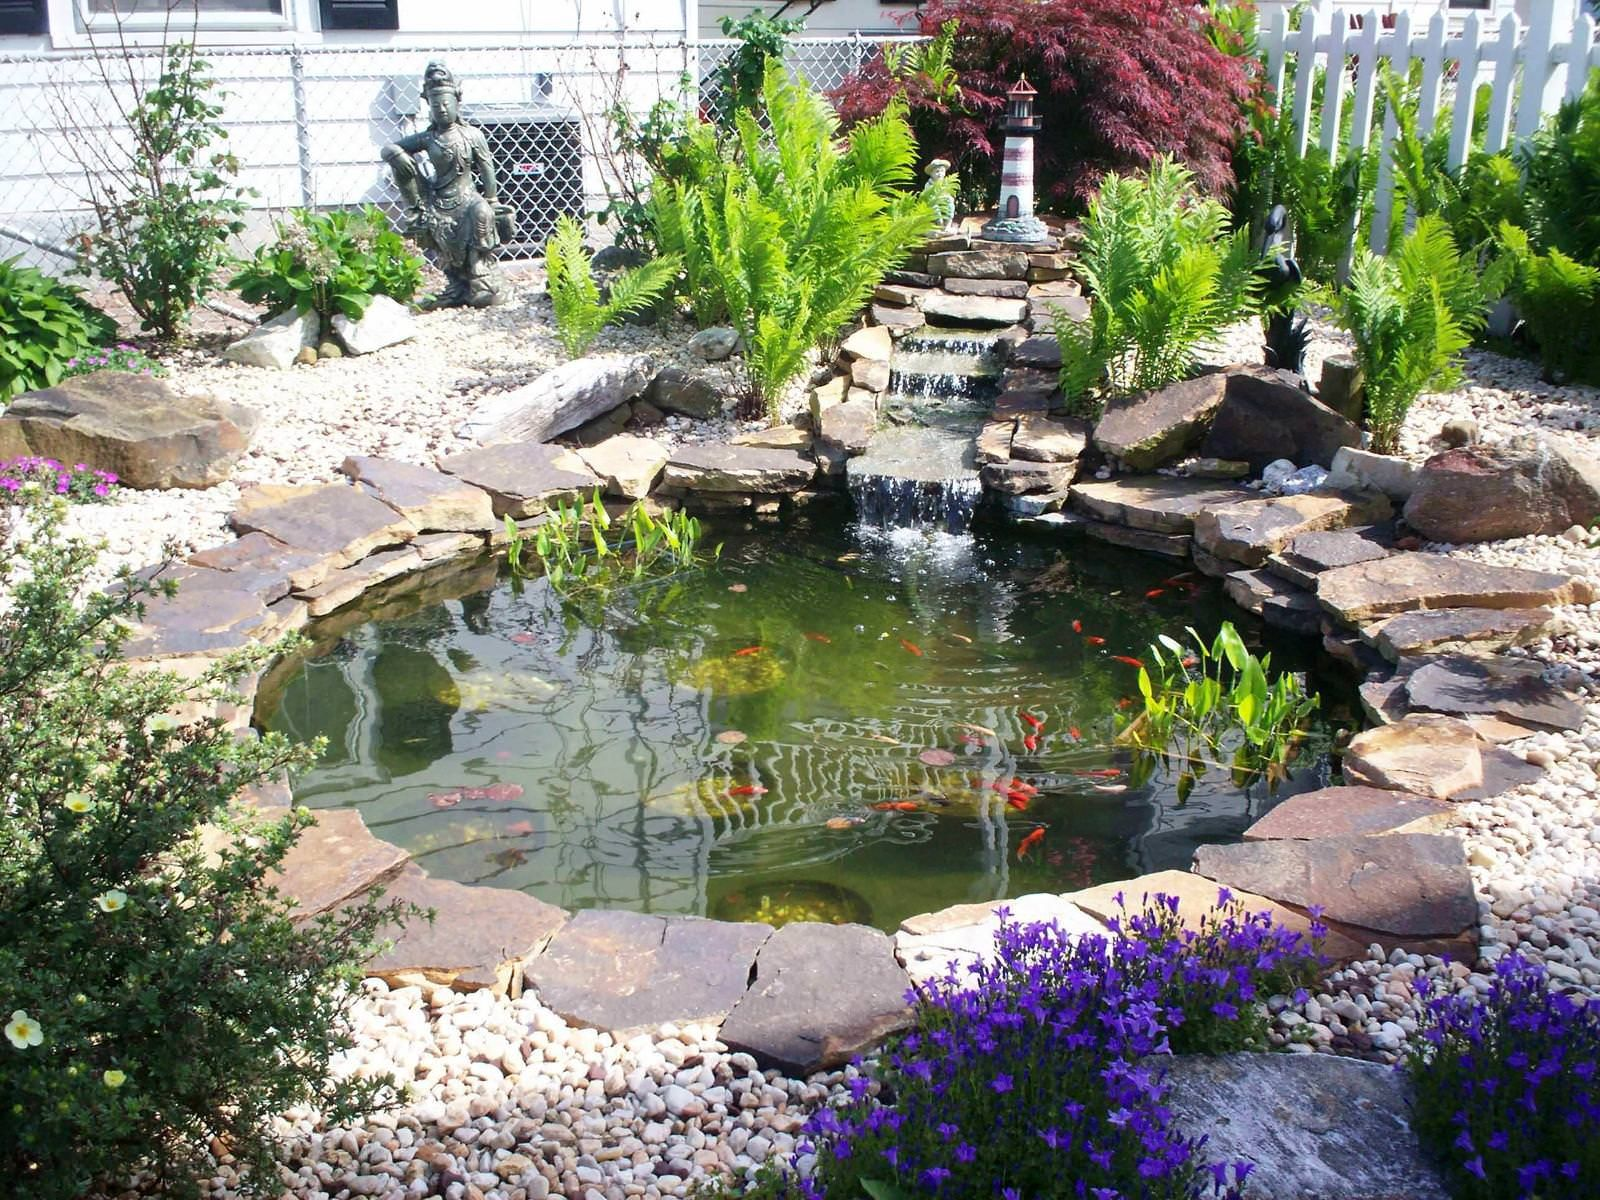 small garden or backyard aquarium ideas practic ideas best home design ideas - Garden Home Designs